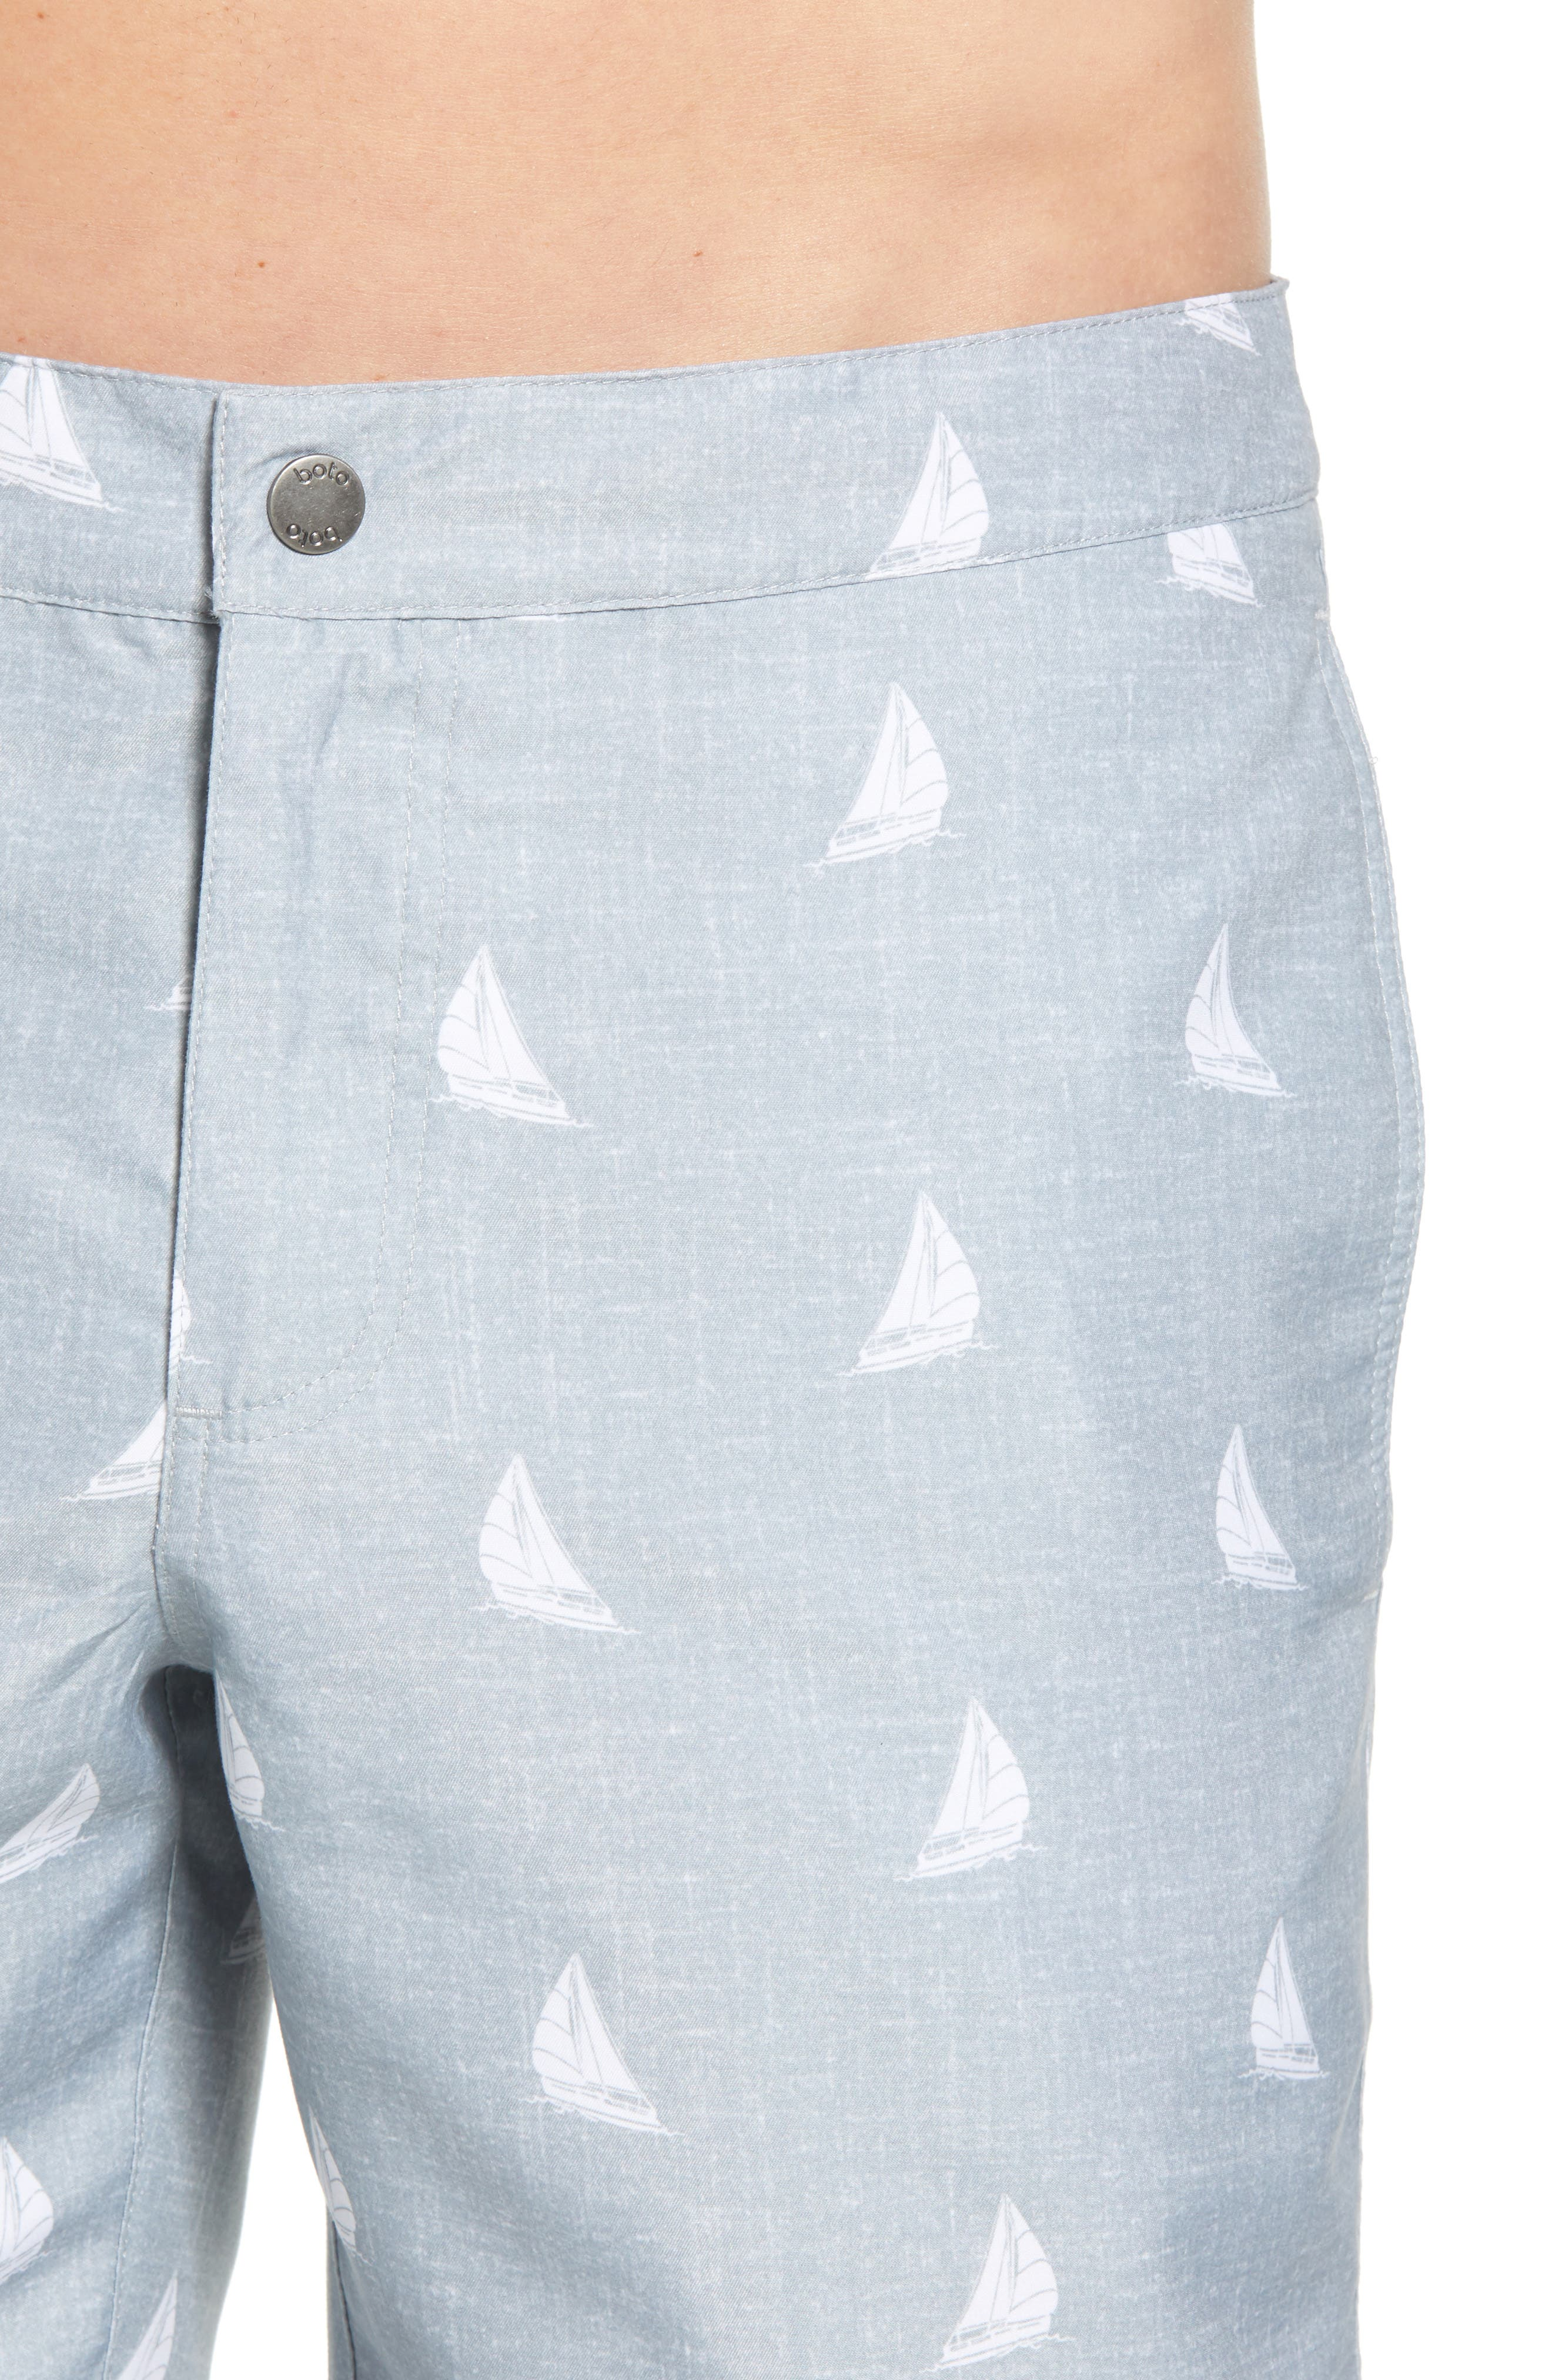 Aruba Slim Fit Swim Trunks,                             Alternate thumbnail 4, color,                             HEATHERED GREY SAILBOATS